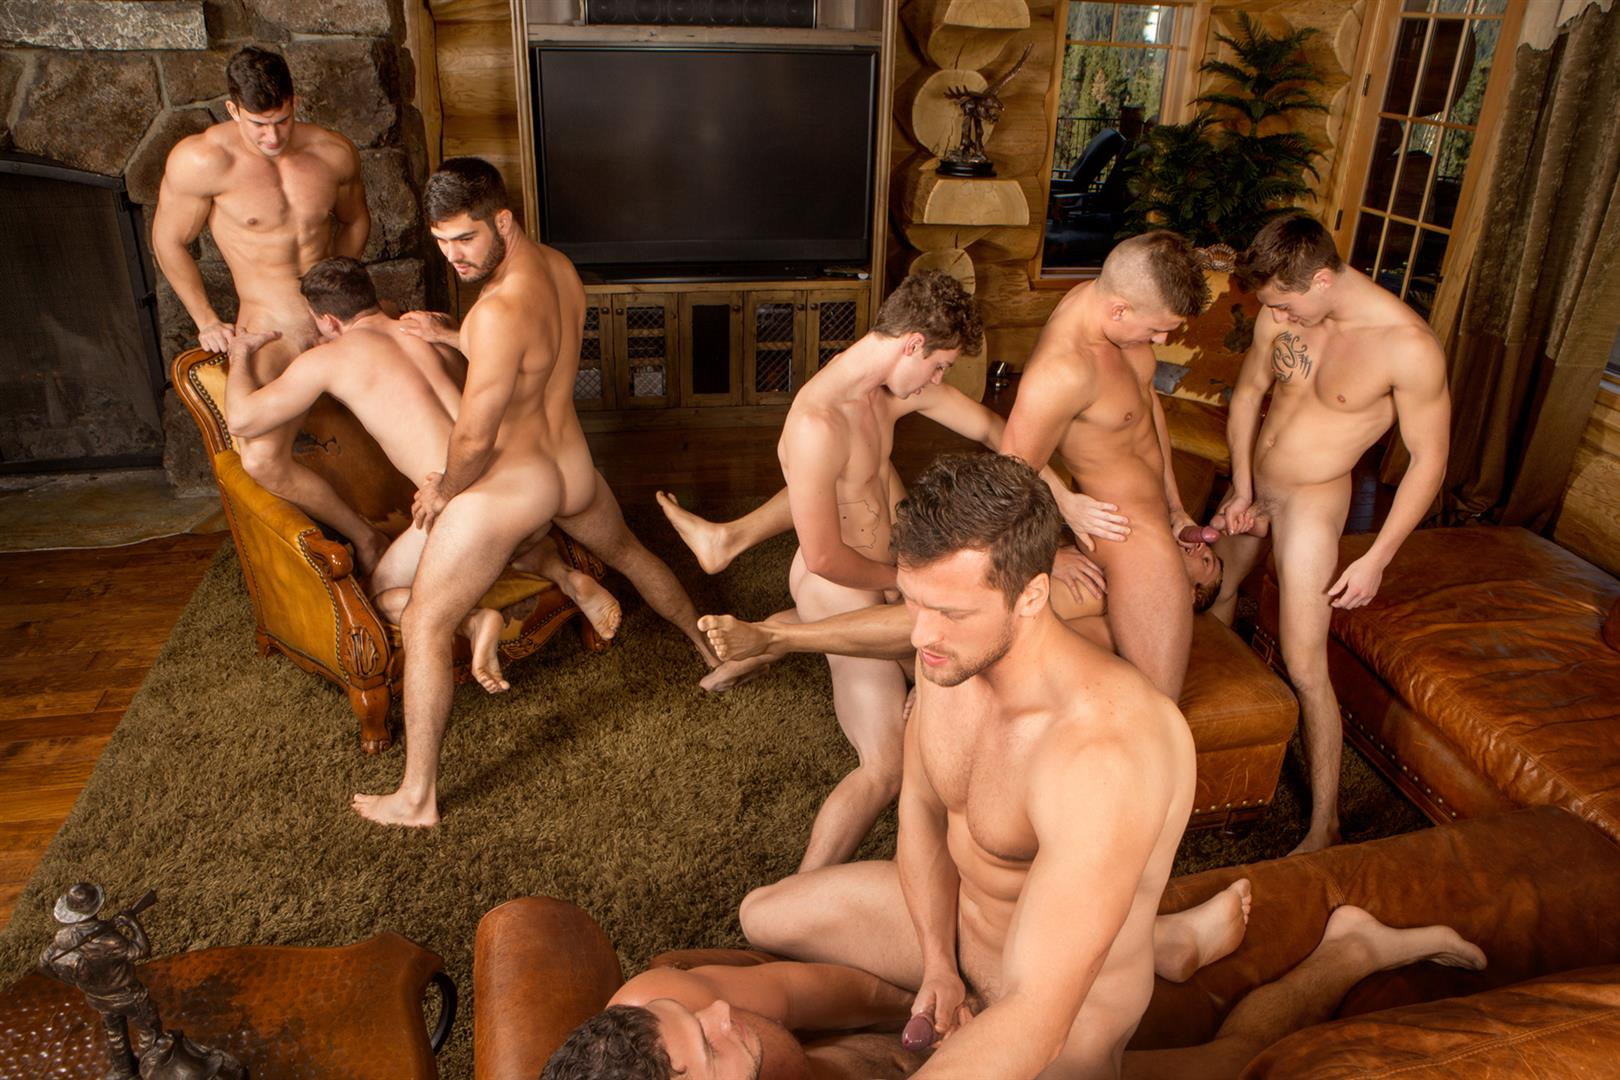 Sean-Cody-Winter-Getaway-Day-5-Big-Dick-Hunks-Fucking-Bareback-Amateur-Gay-Porn-13 Sean Cody Takes The Boys On A 8-Day Bareback Winter Getaway